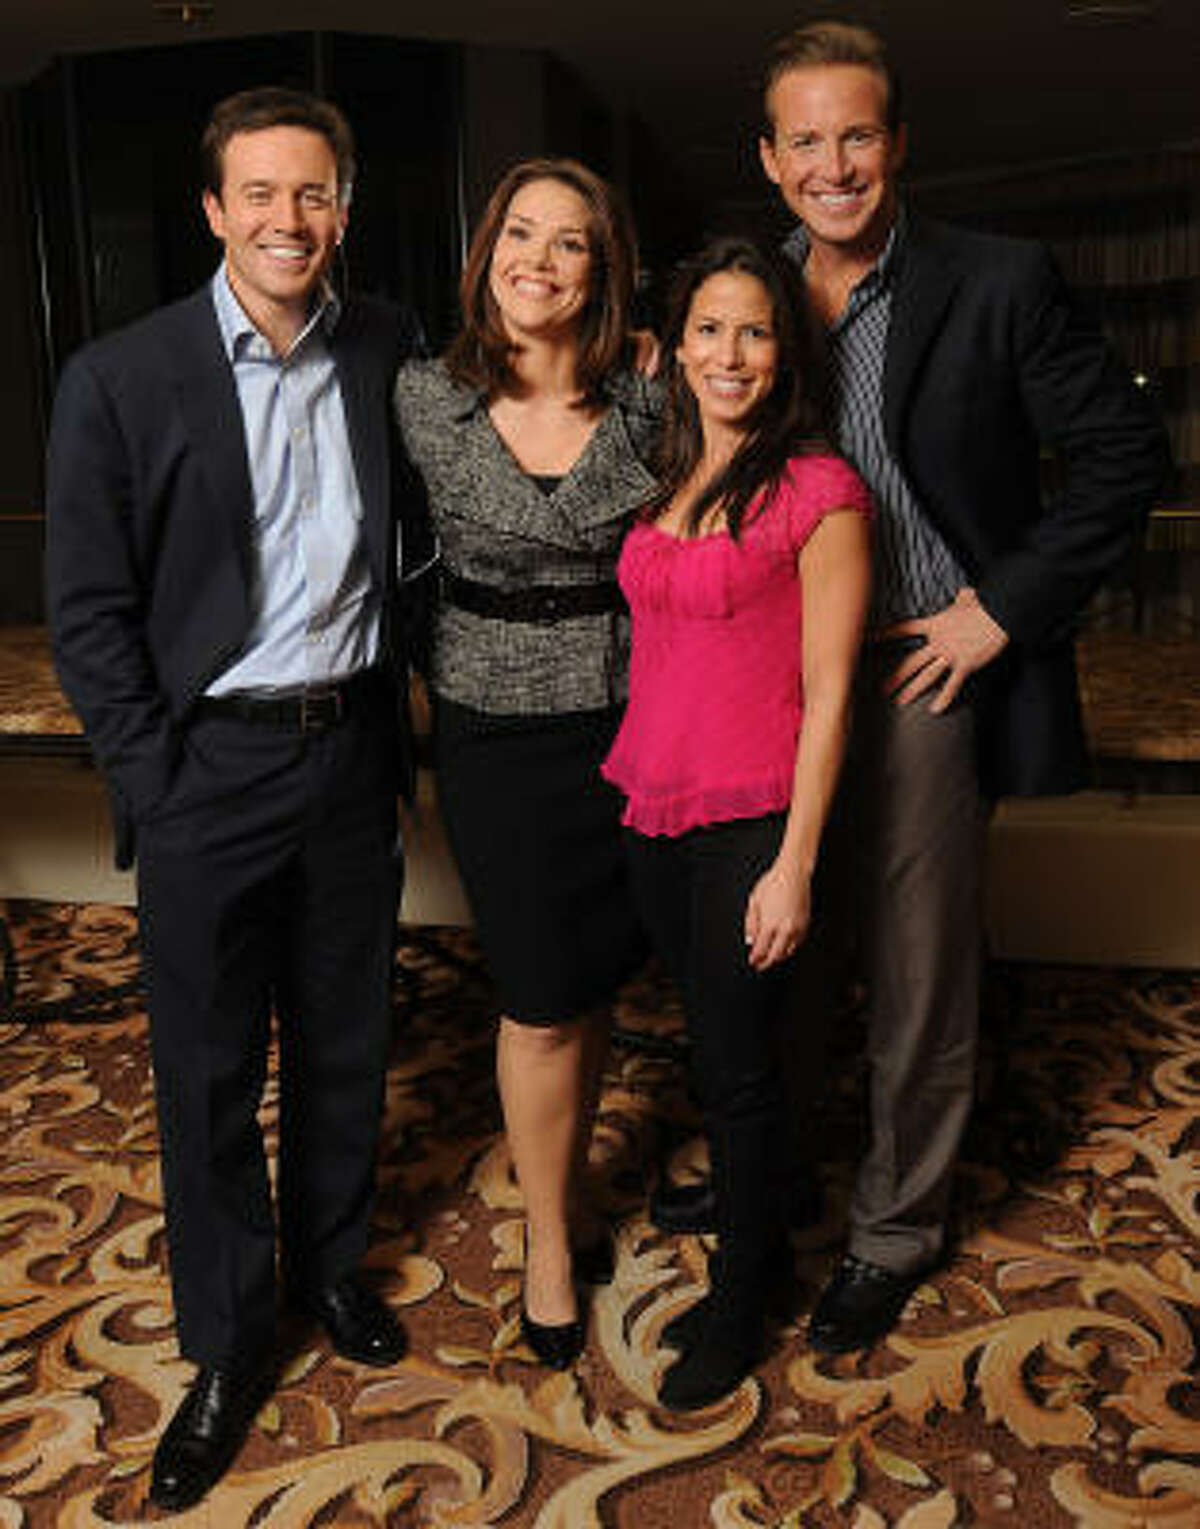 The new crew of The Early Show photographed at the Four Seasons Hotel Tuesday Dec. 14, 2010. From left: news anchor Jeff Glor, co-anchor Erica Hill, weather anchor Marysol Castro and co-anchor Chris Wragge.(Dave Rossman/For the Chronicle)